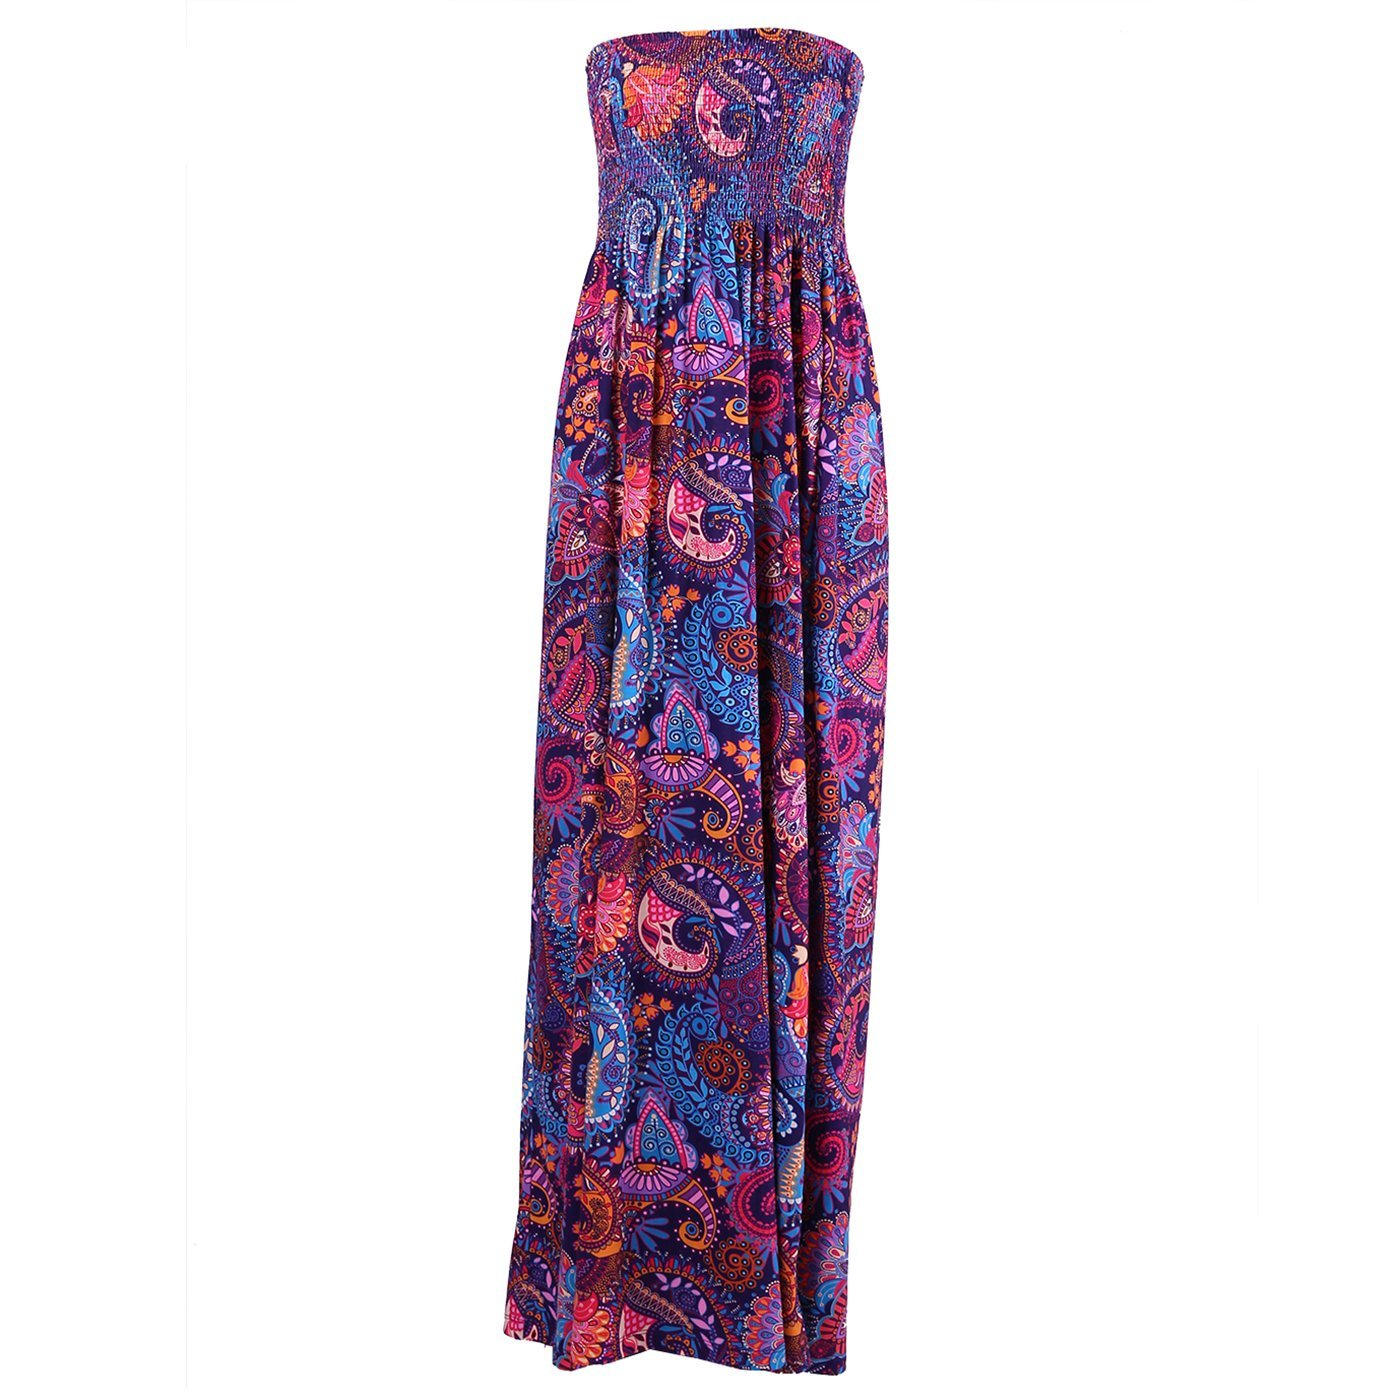 HDE Women's Strapless Maxi Dress Plus Size Tube Top Long Skirt Sundress Cover up (Purple Paisley, 2X) by HDE (Image #5)